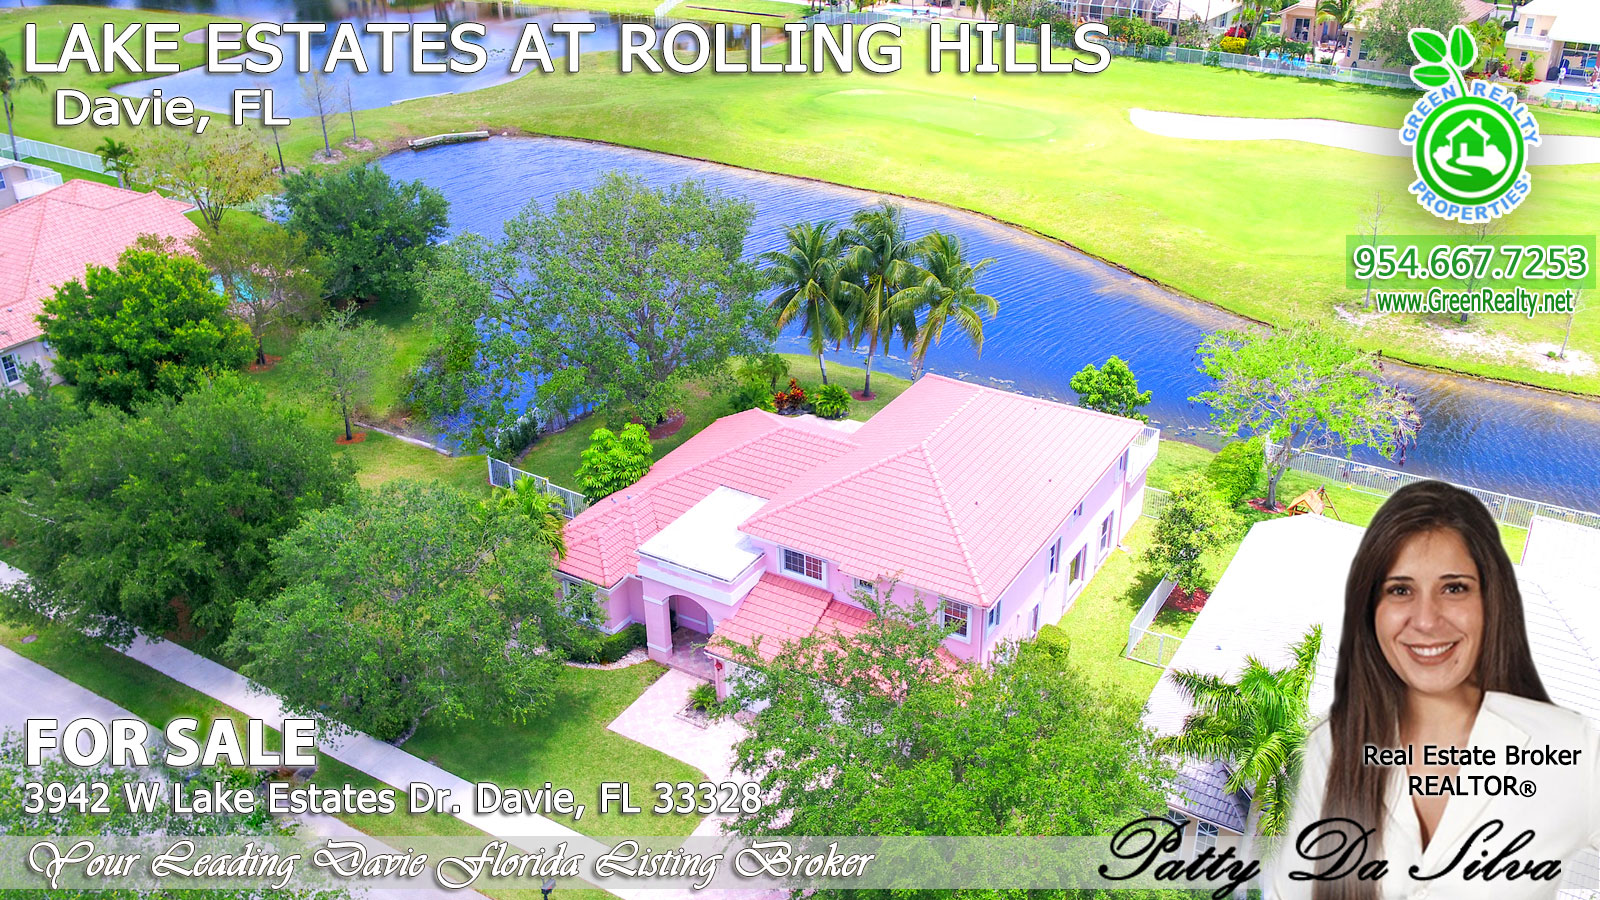 Your-leading-davie-florida-listing-broker-Patty-da-silva-9546677253-grp